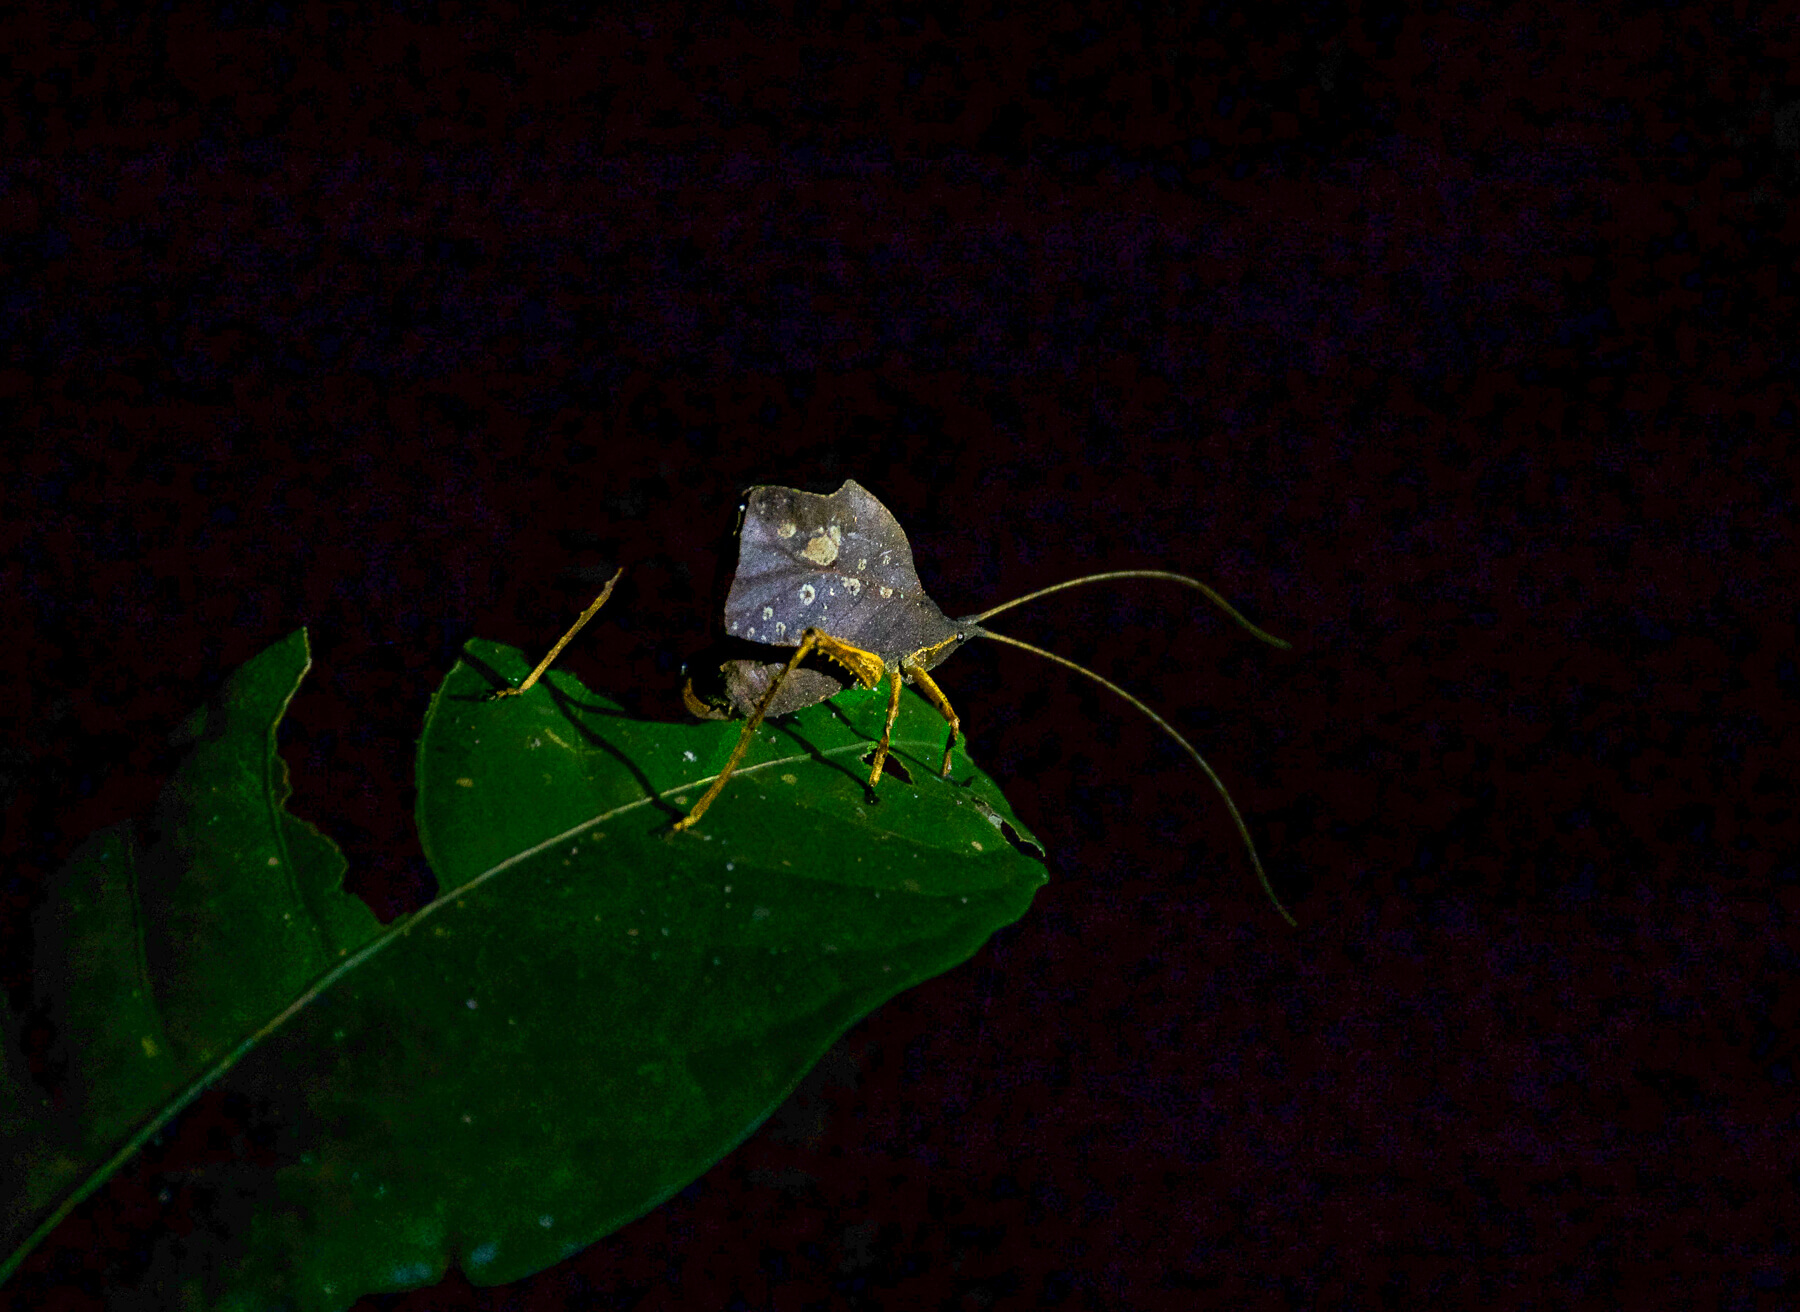 A small strange Amazonian bug with yellow legs and antlers, and an oblong shell, perched on a green leaf during the night